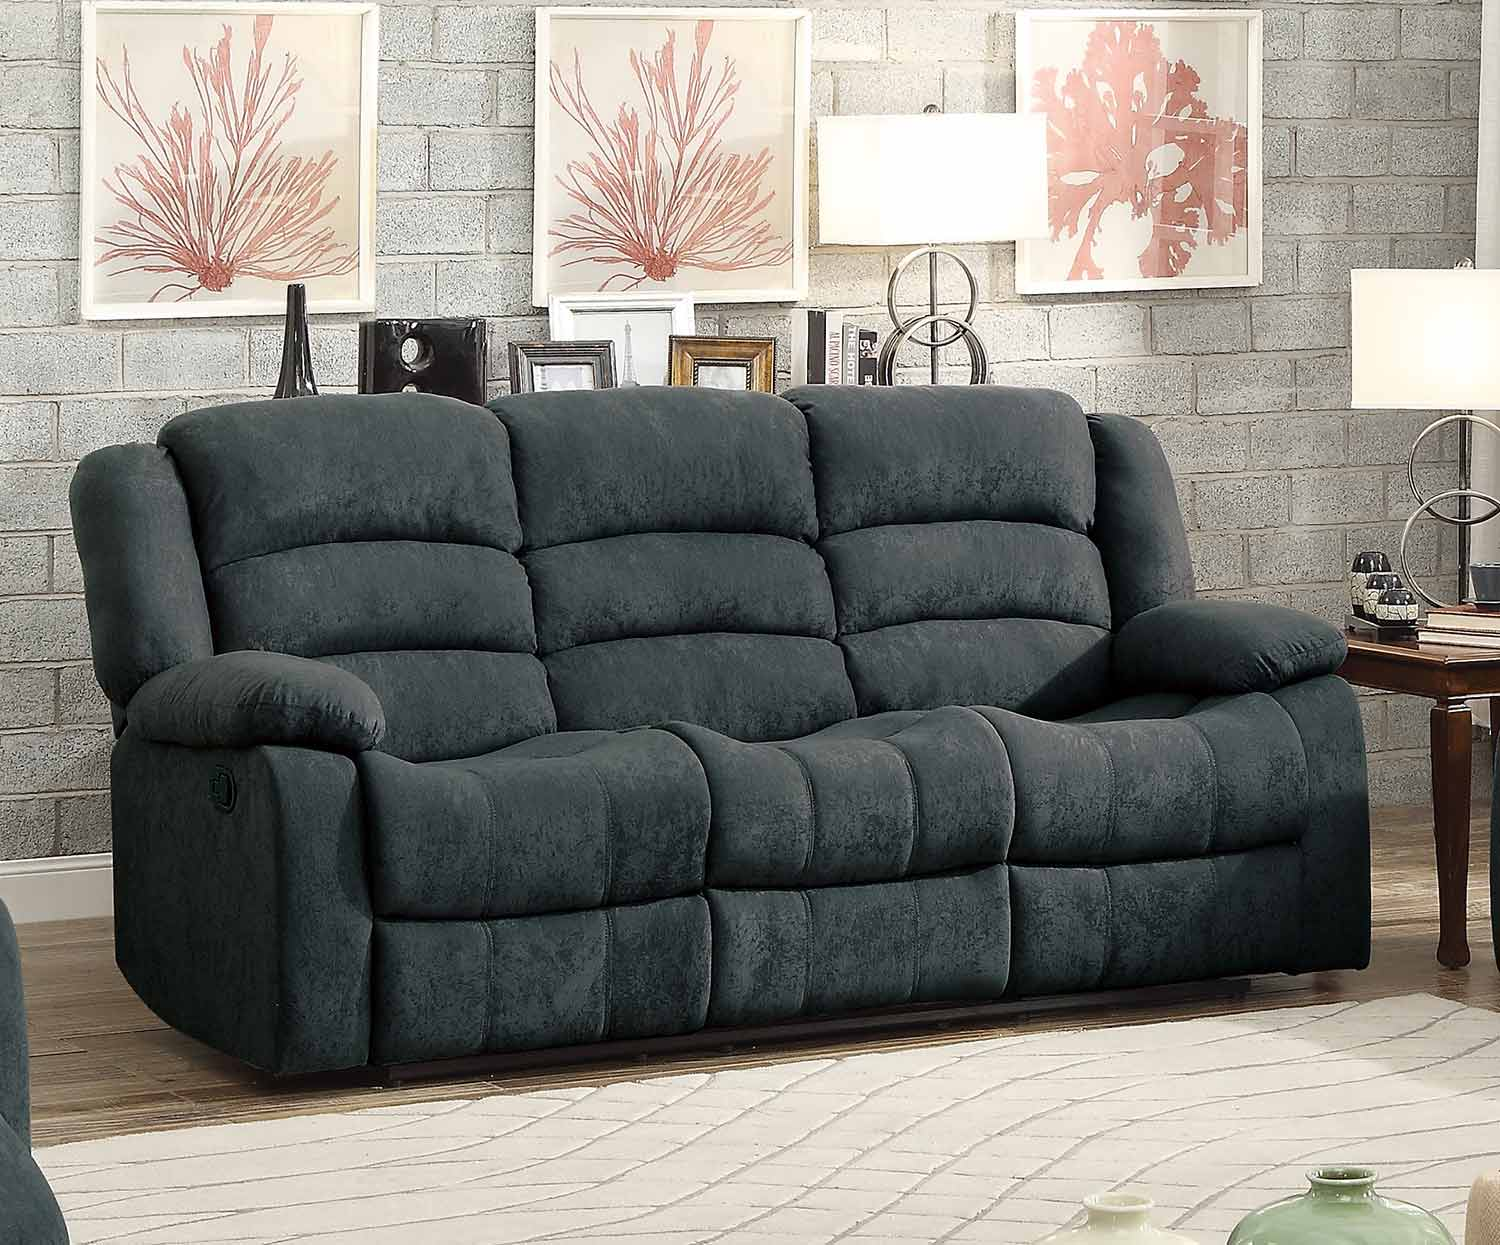 Prime Homelegance Greenville Reclining Sofa Set Blue Grey 8436Gy Andrewgaddart Wooden Chair Designs For Living Room Andrewgaddartcom